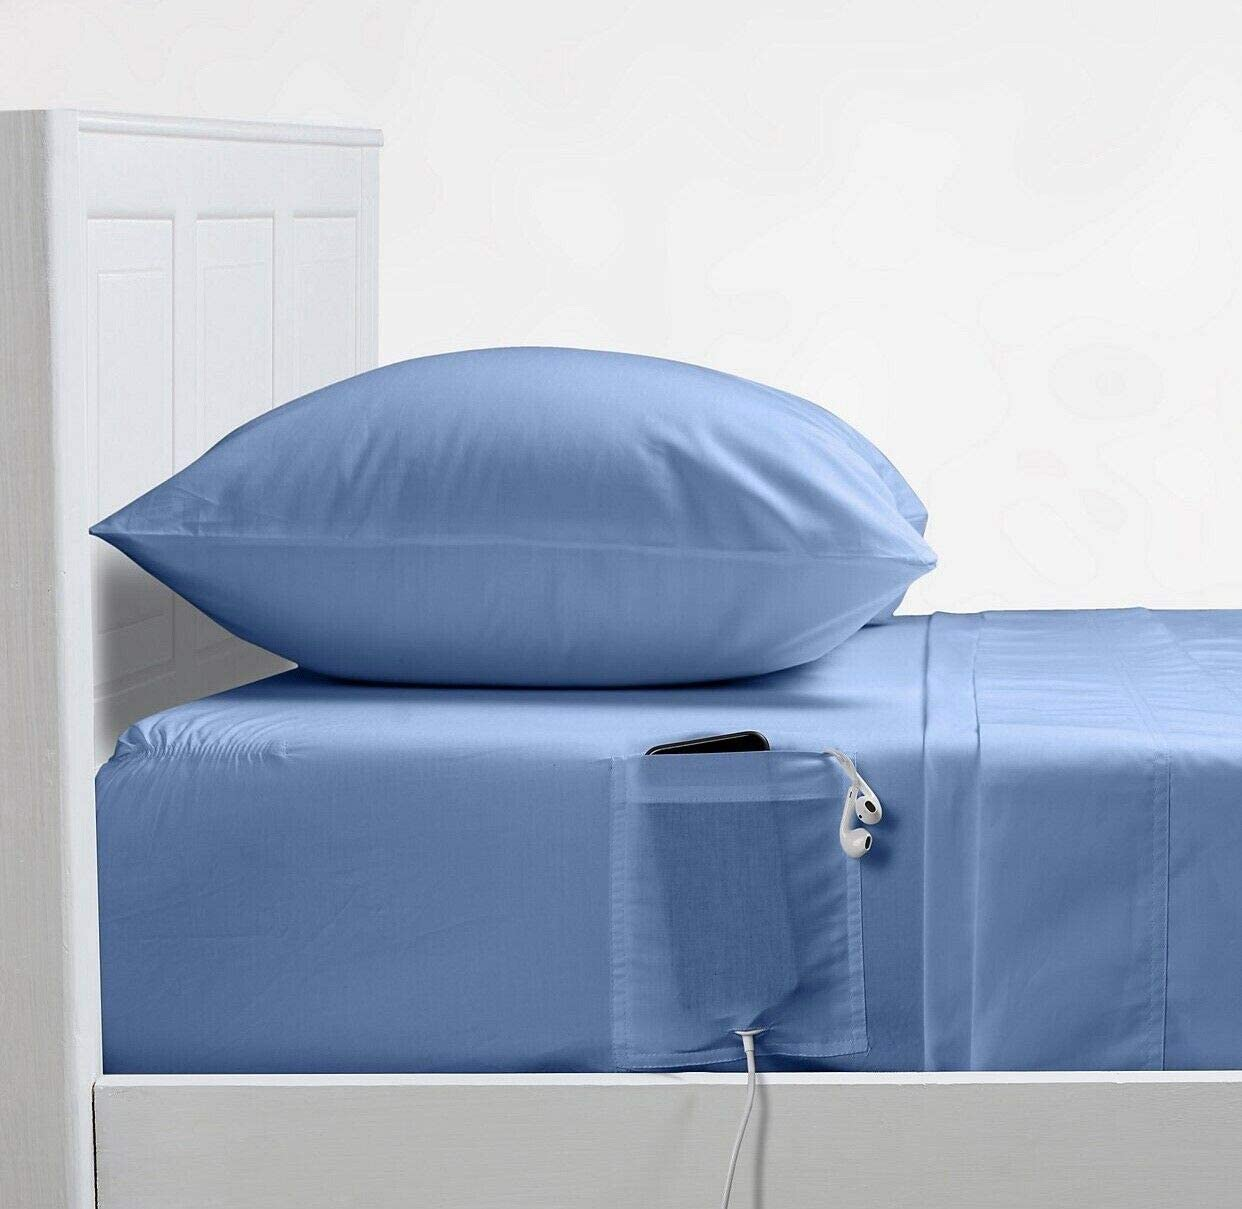 Amazon Com Bed Bath Beyond Campus Smart Cotton 250 Thread Count Full Full Xl Sheet Set In Placid Blue Home Kitchen